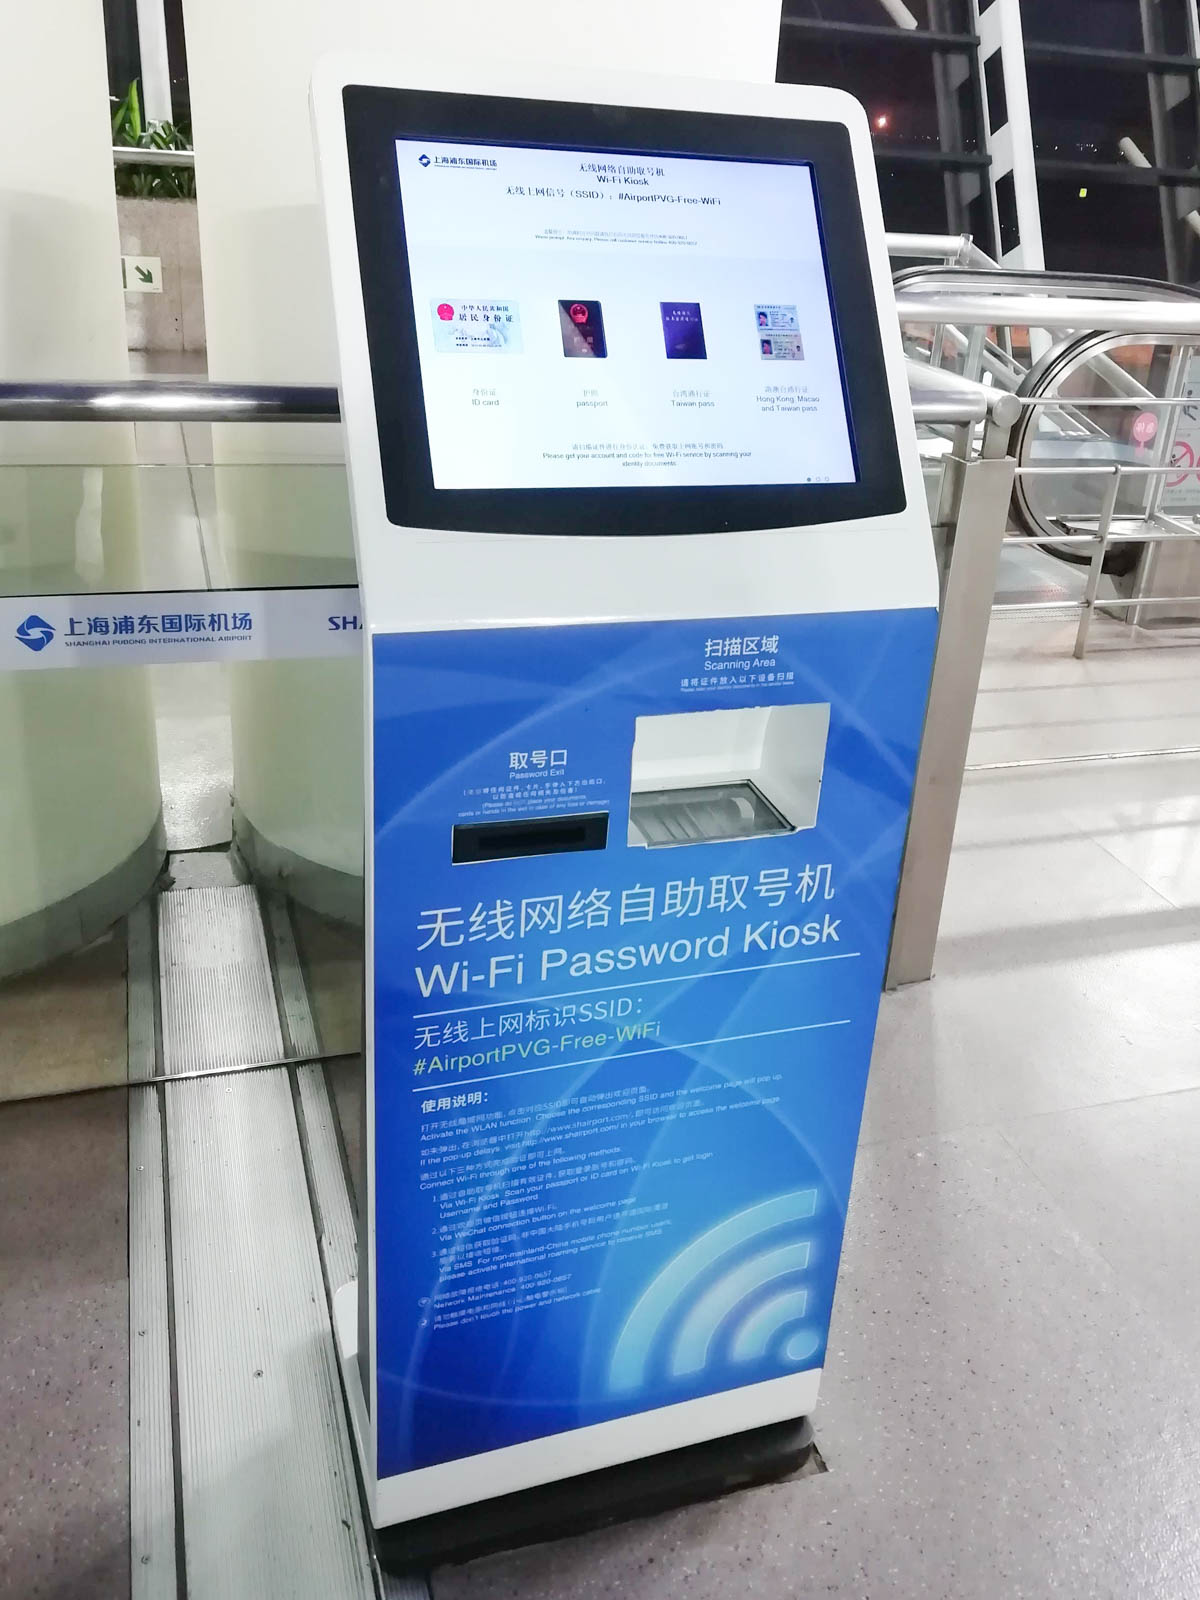 Wi-Fi Password Kiosk